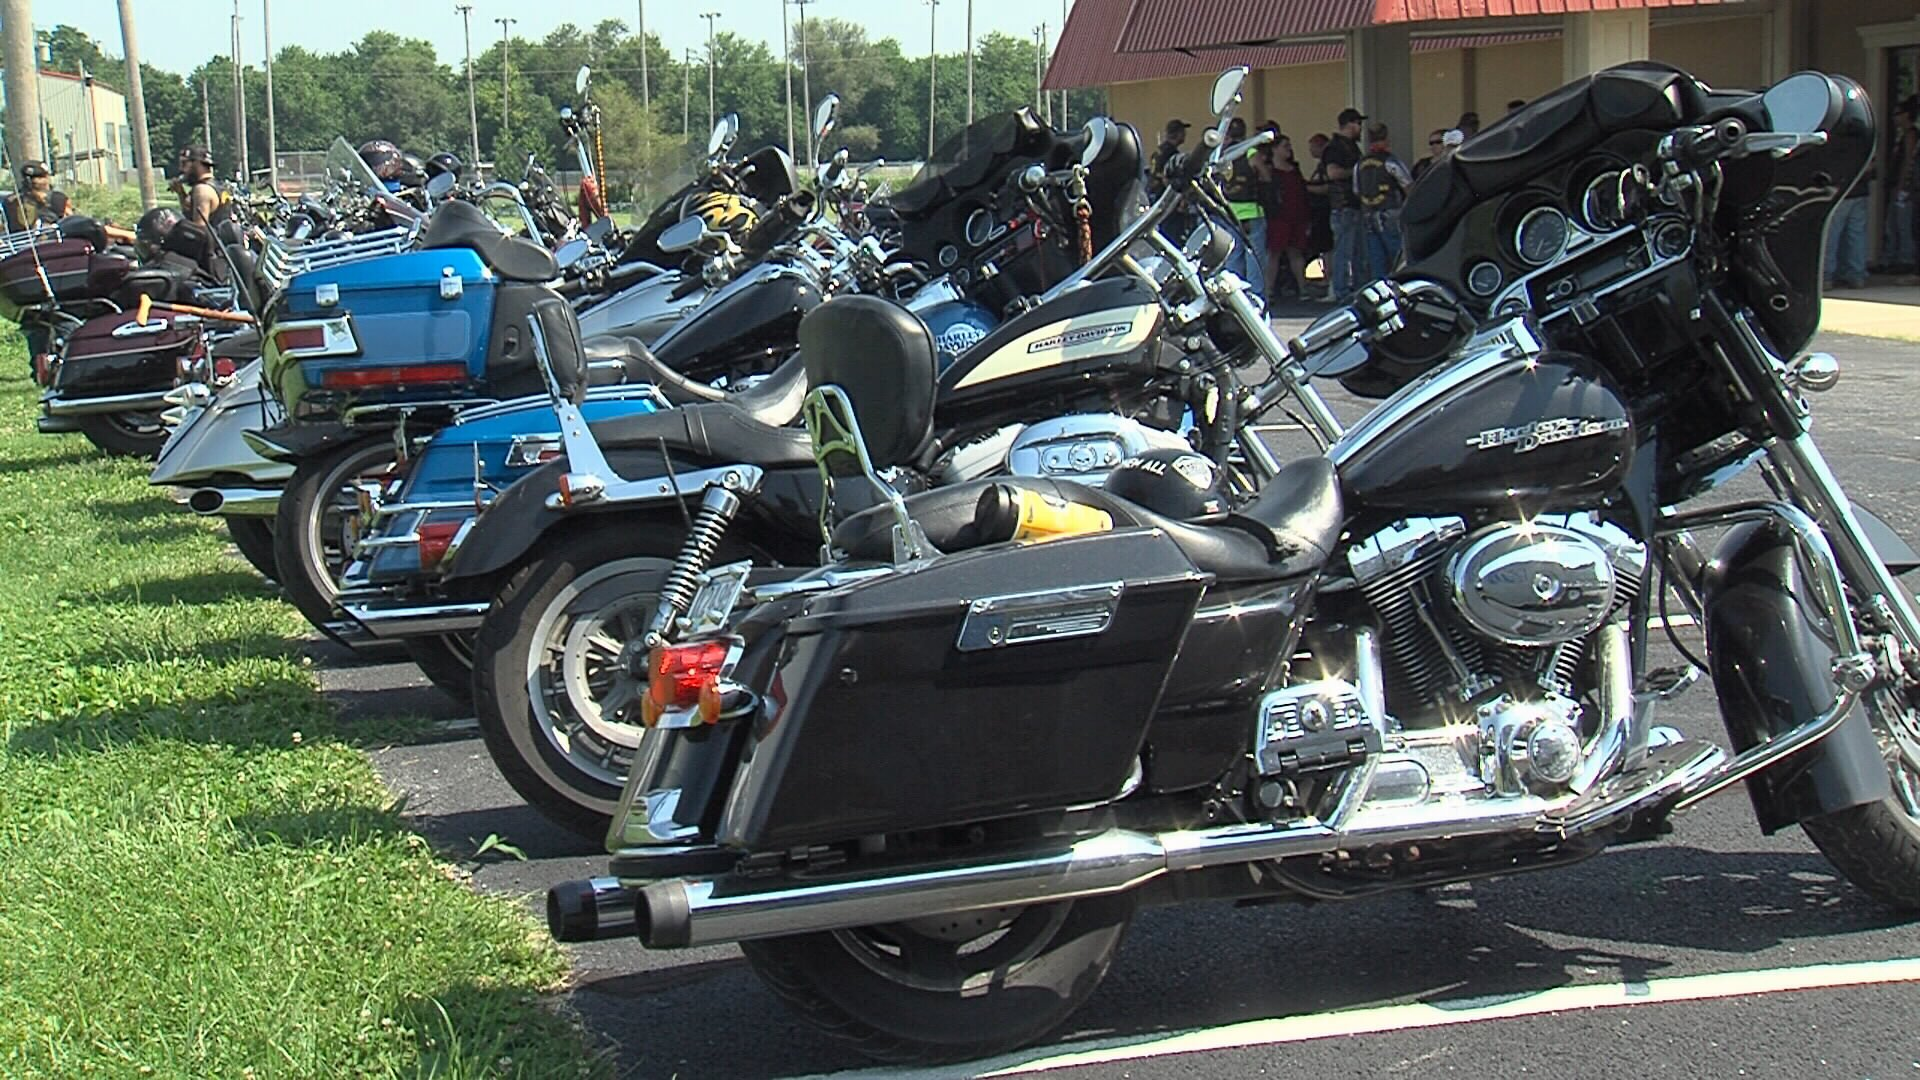 Motorcycle Rally Rolls Into Joplin With Message Of Faith